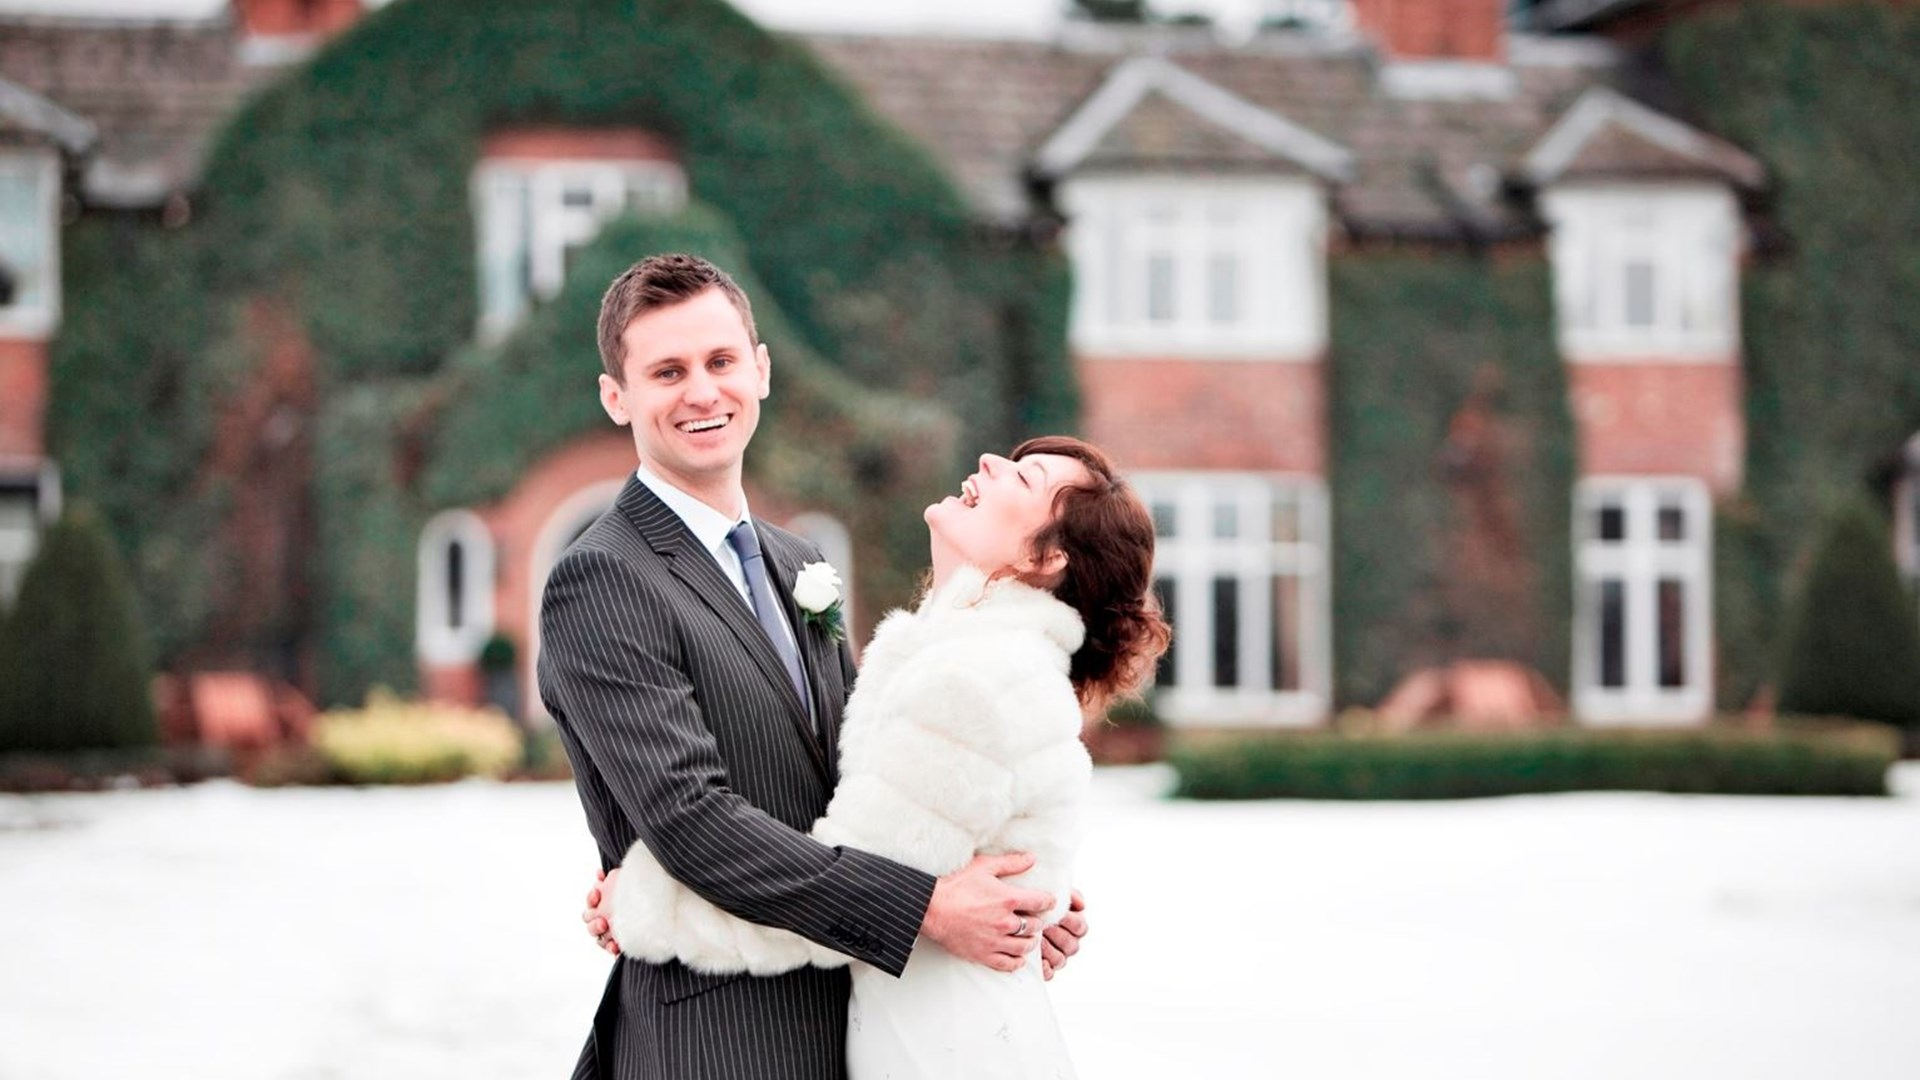 Wedding at The Manor House, The Belfry